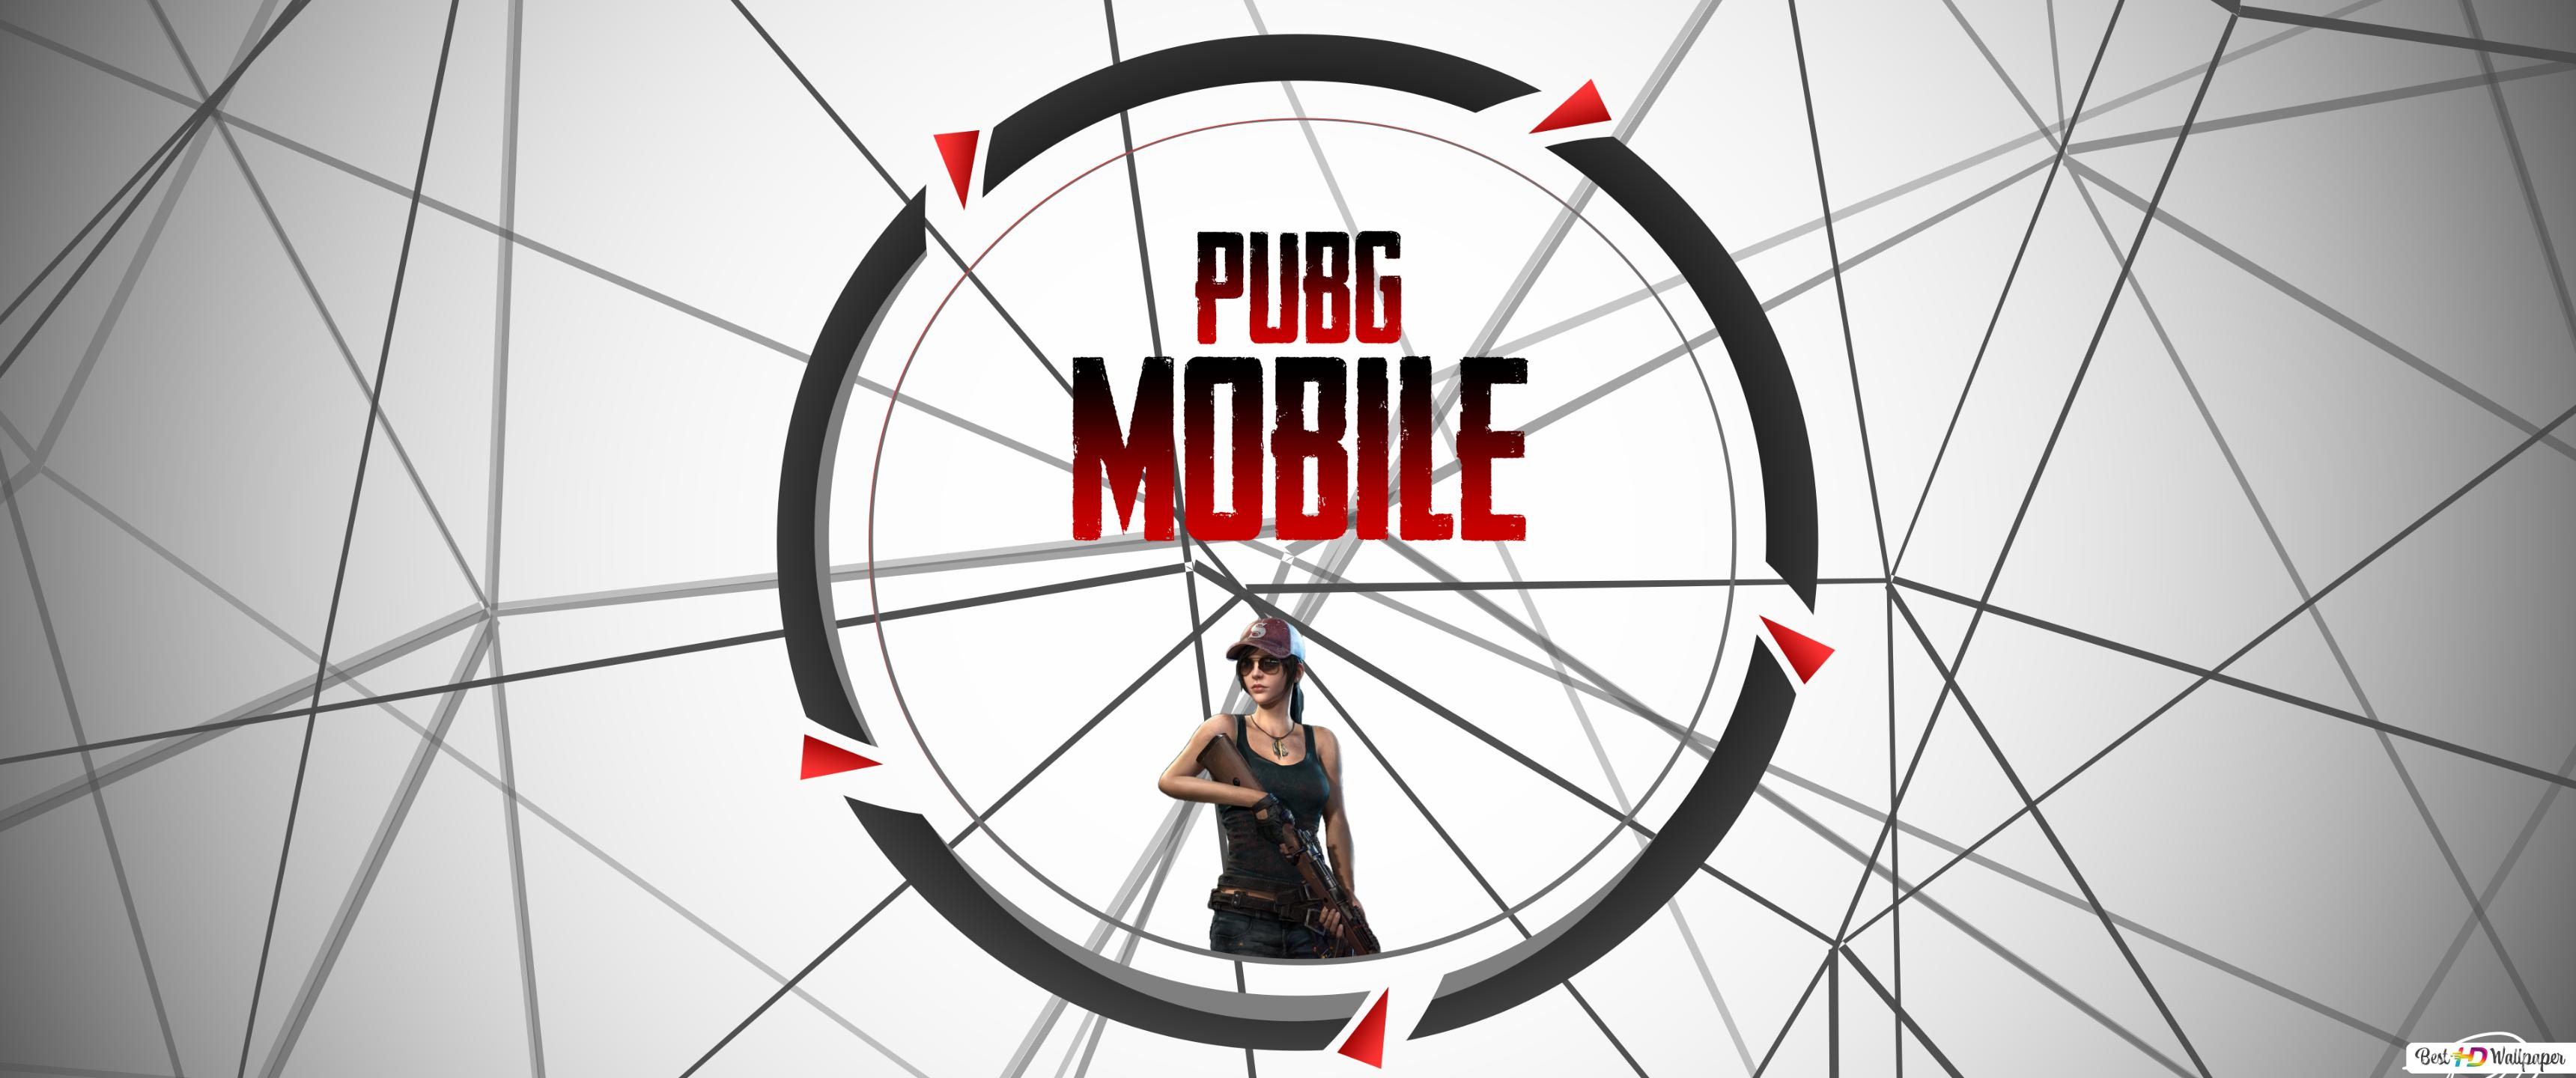 Pubg Mobile Hd Coming Soon: Pubg Mobile Hd HD Wallpaper Download